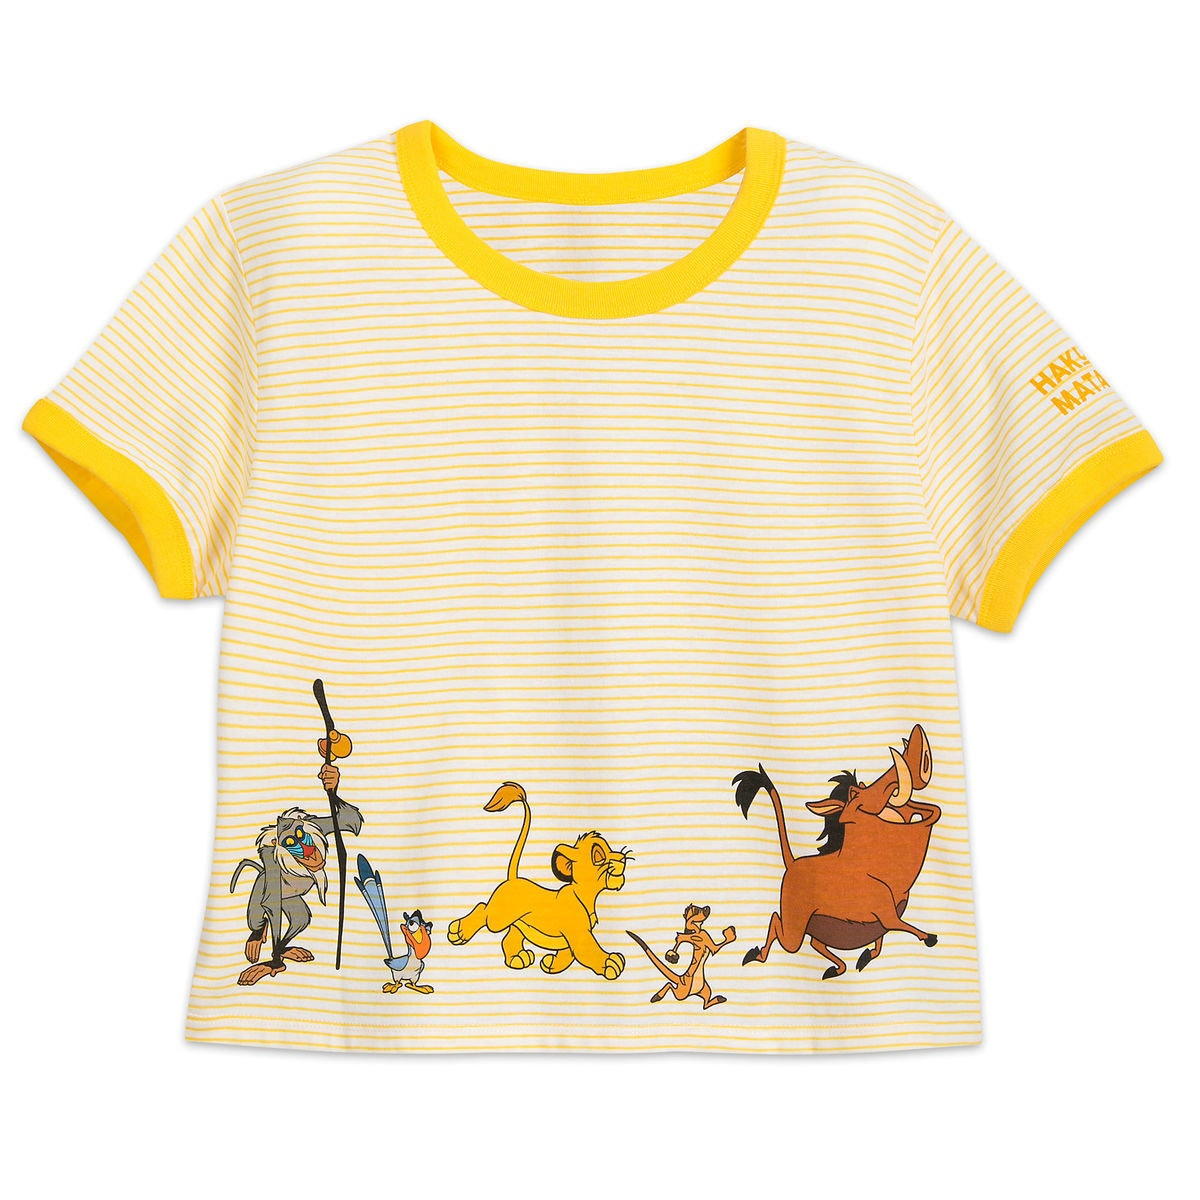 The Lion King T-Shirt - Oh My Disney